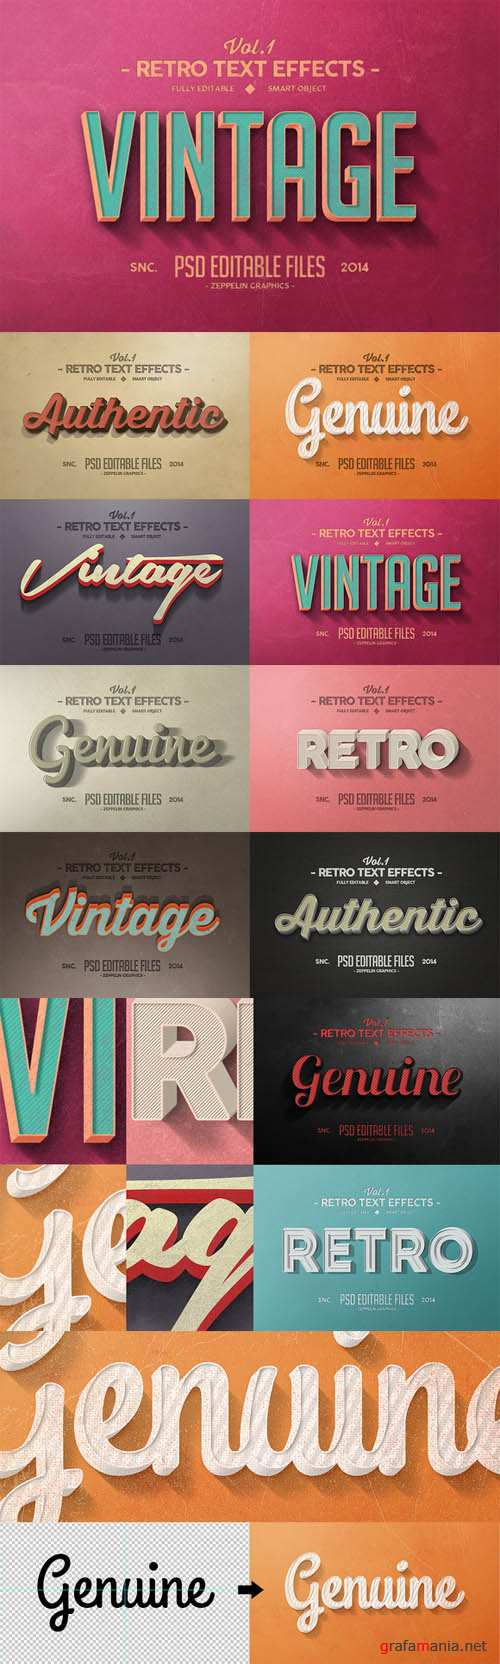 Vintage Text Effects Vol 1